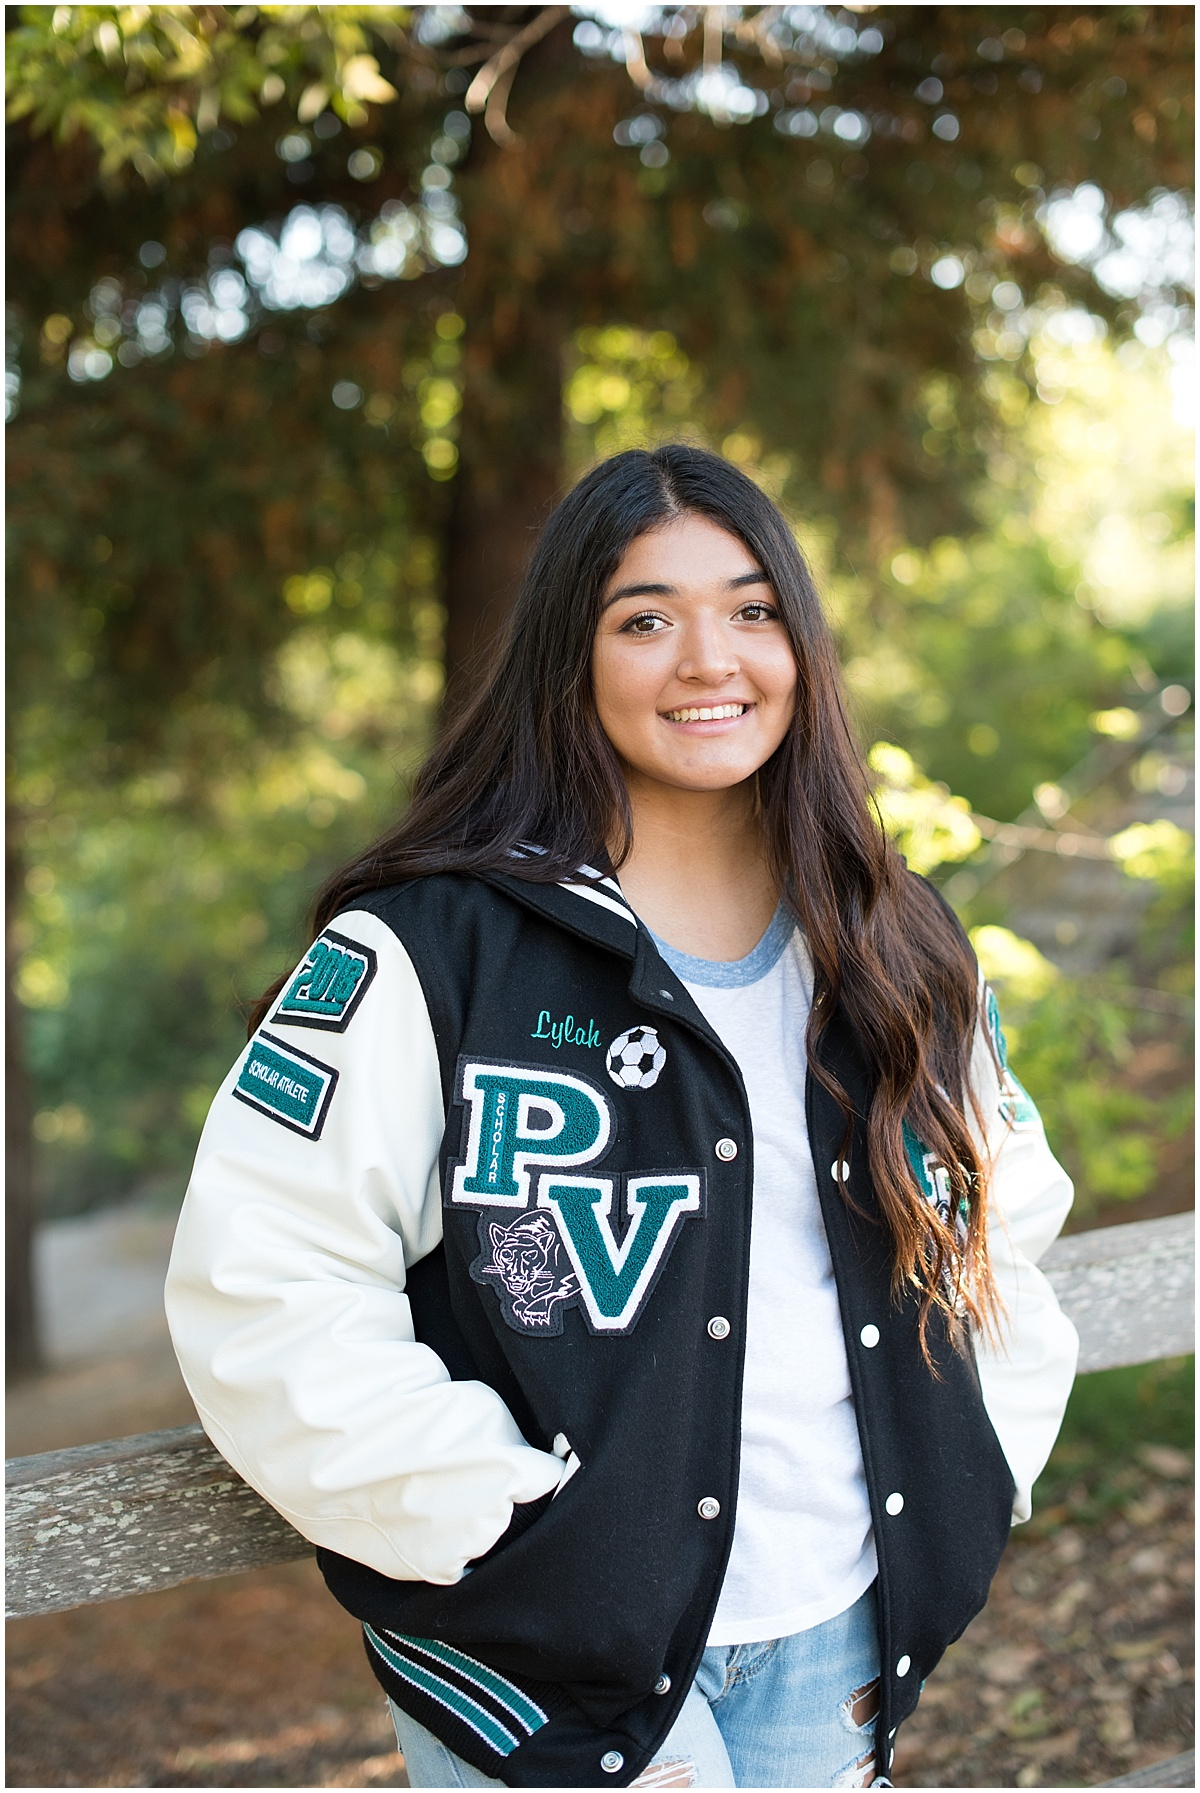 Pioneer Valley High School Senior Photo at the Village of Arroyo Grande